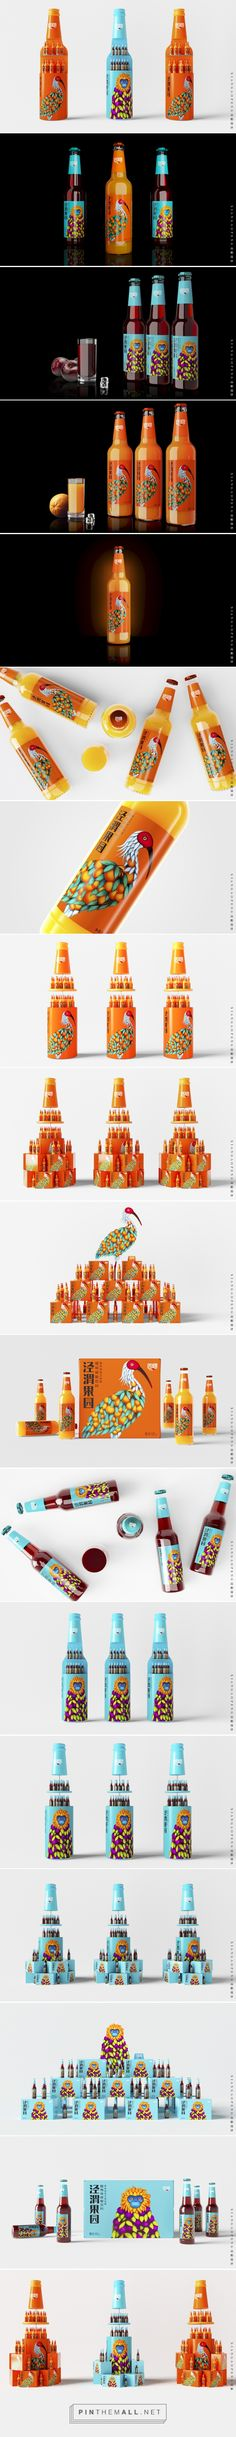 That Hi - Jing Wei Orchard Series (beer and fruit juice, I think) by JING WEI GUO YUAN. Source: xiangaopeng.com. Pin curated by #SFields99 #packaging #design #inspiration #ideas #product #creative #consumer #alcoholic #beverages #drinks #beer #juice #fruit #color #illustration #bottle #box #display #pointofsale #pos